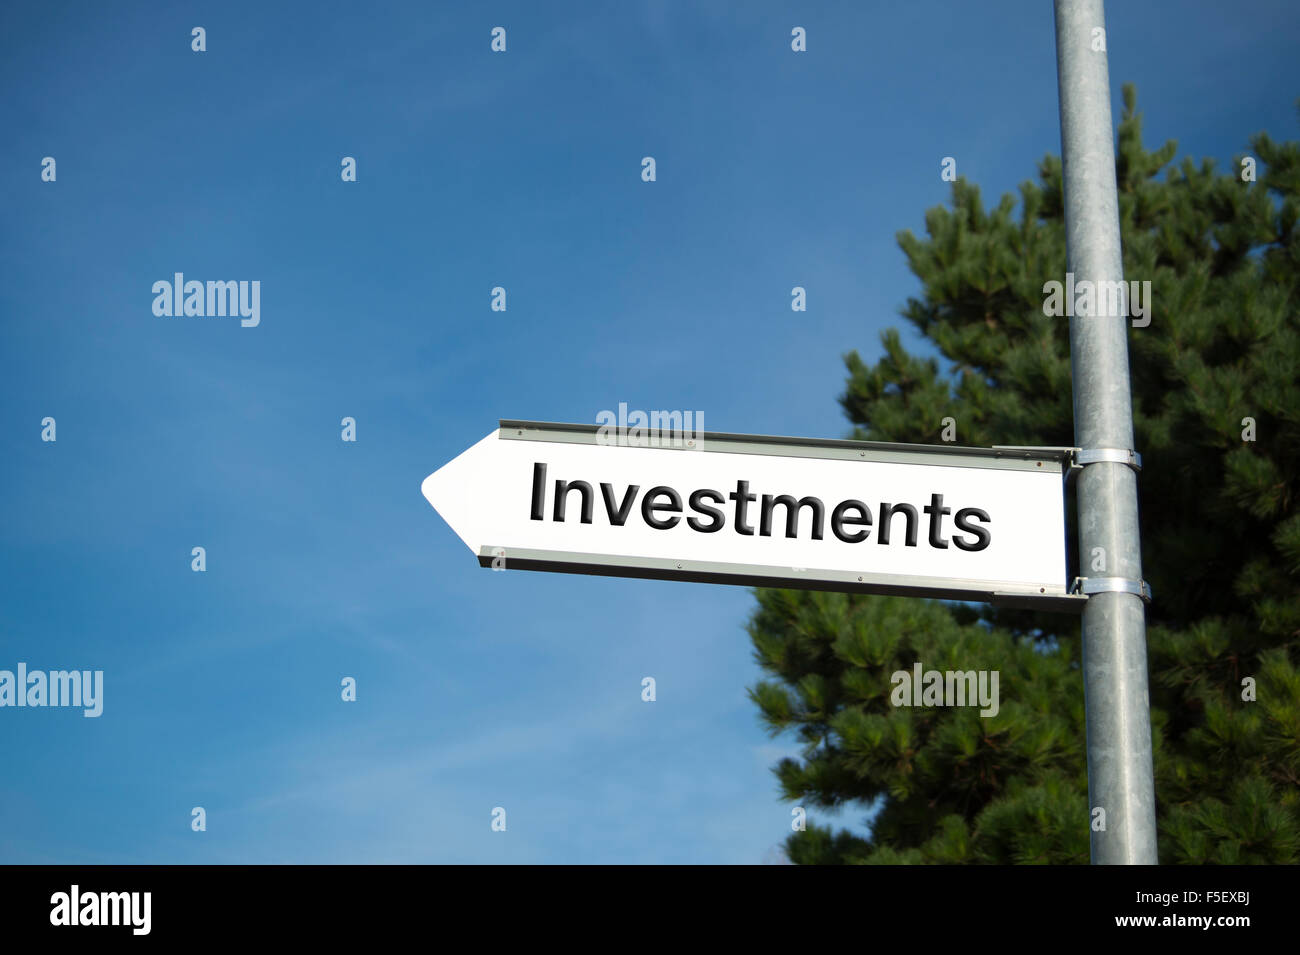 Signpost with 'Investments' direction sign. - Stock Image